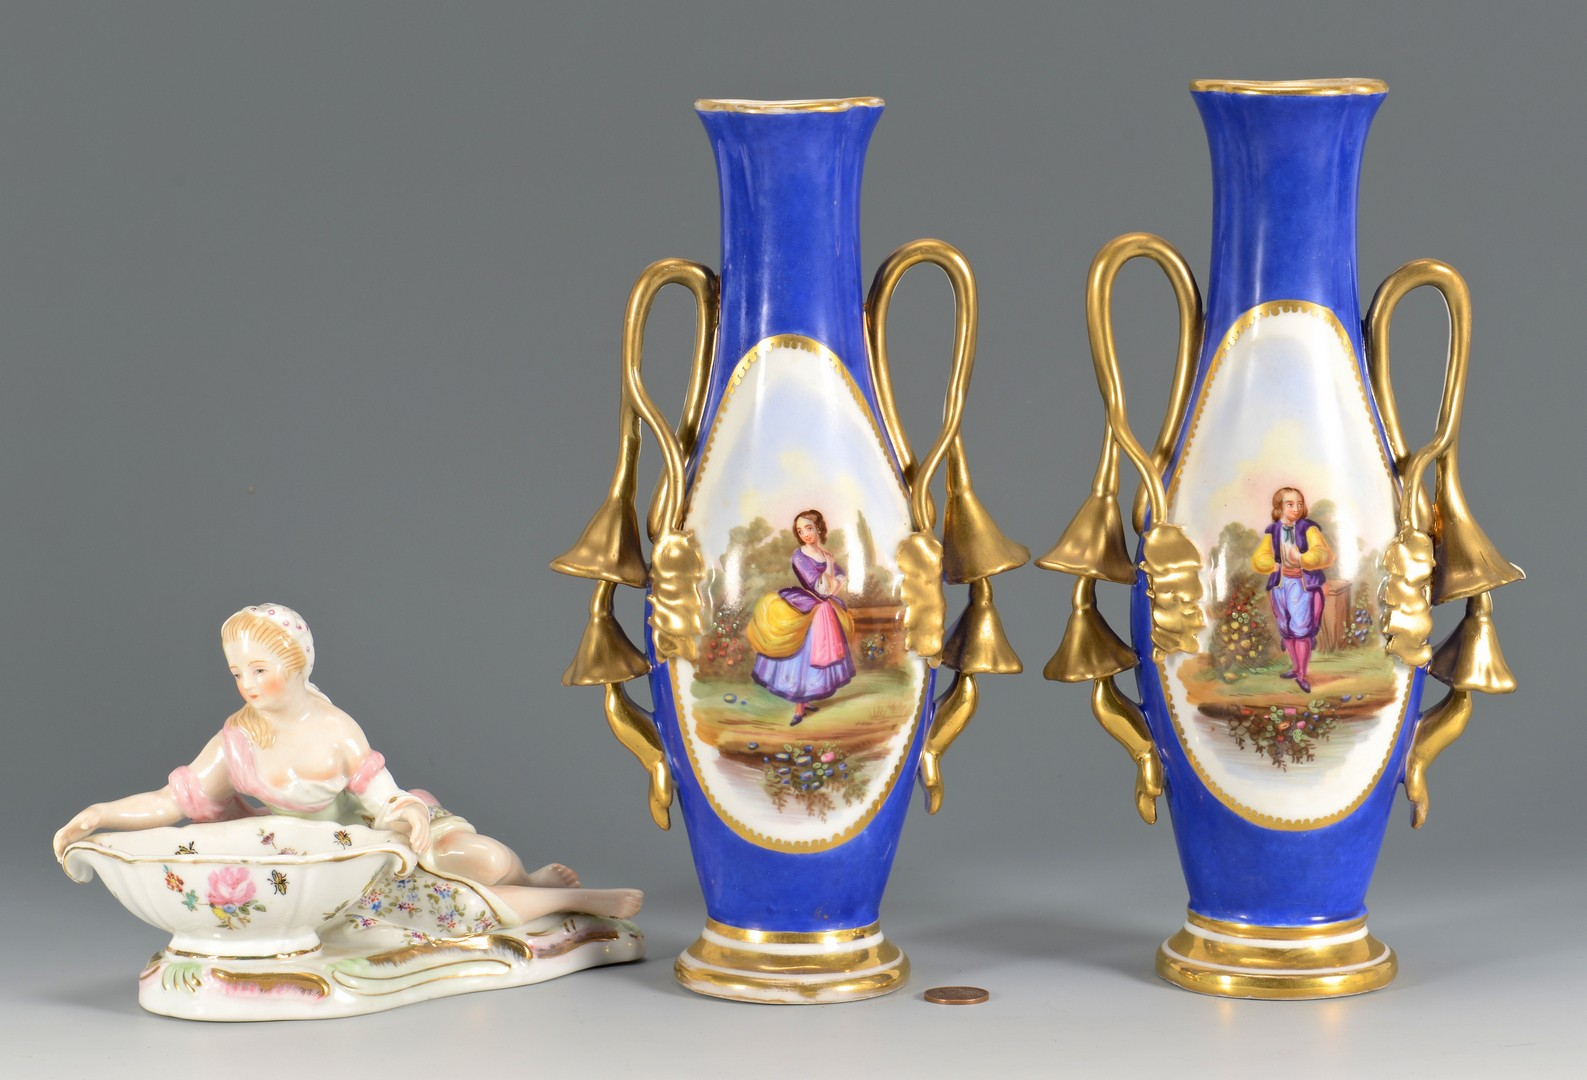 Lot 480: Pr Old Paris Porcelain Vases & Figural Dish